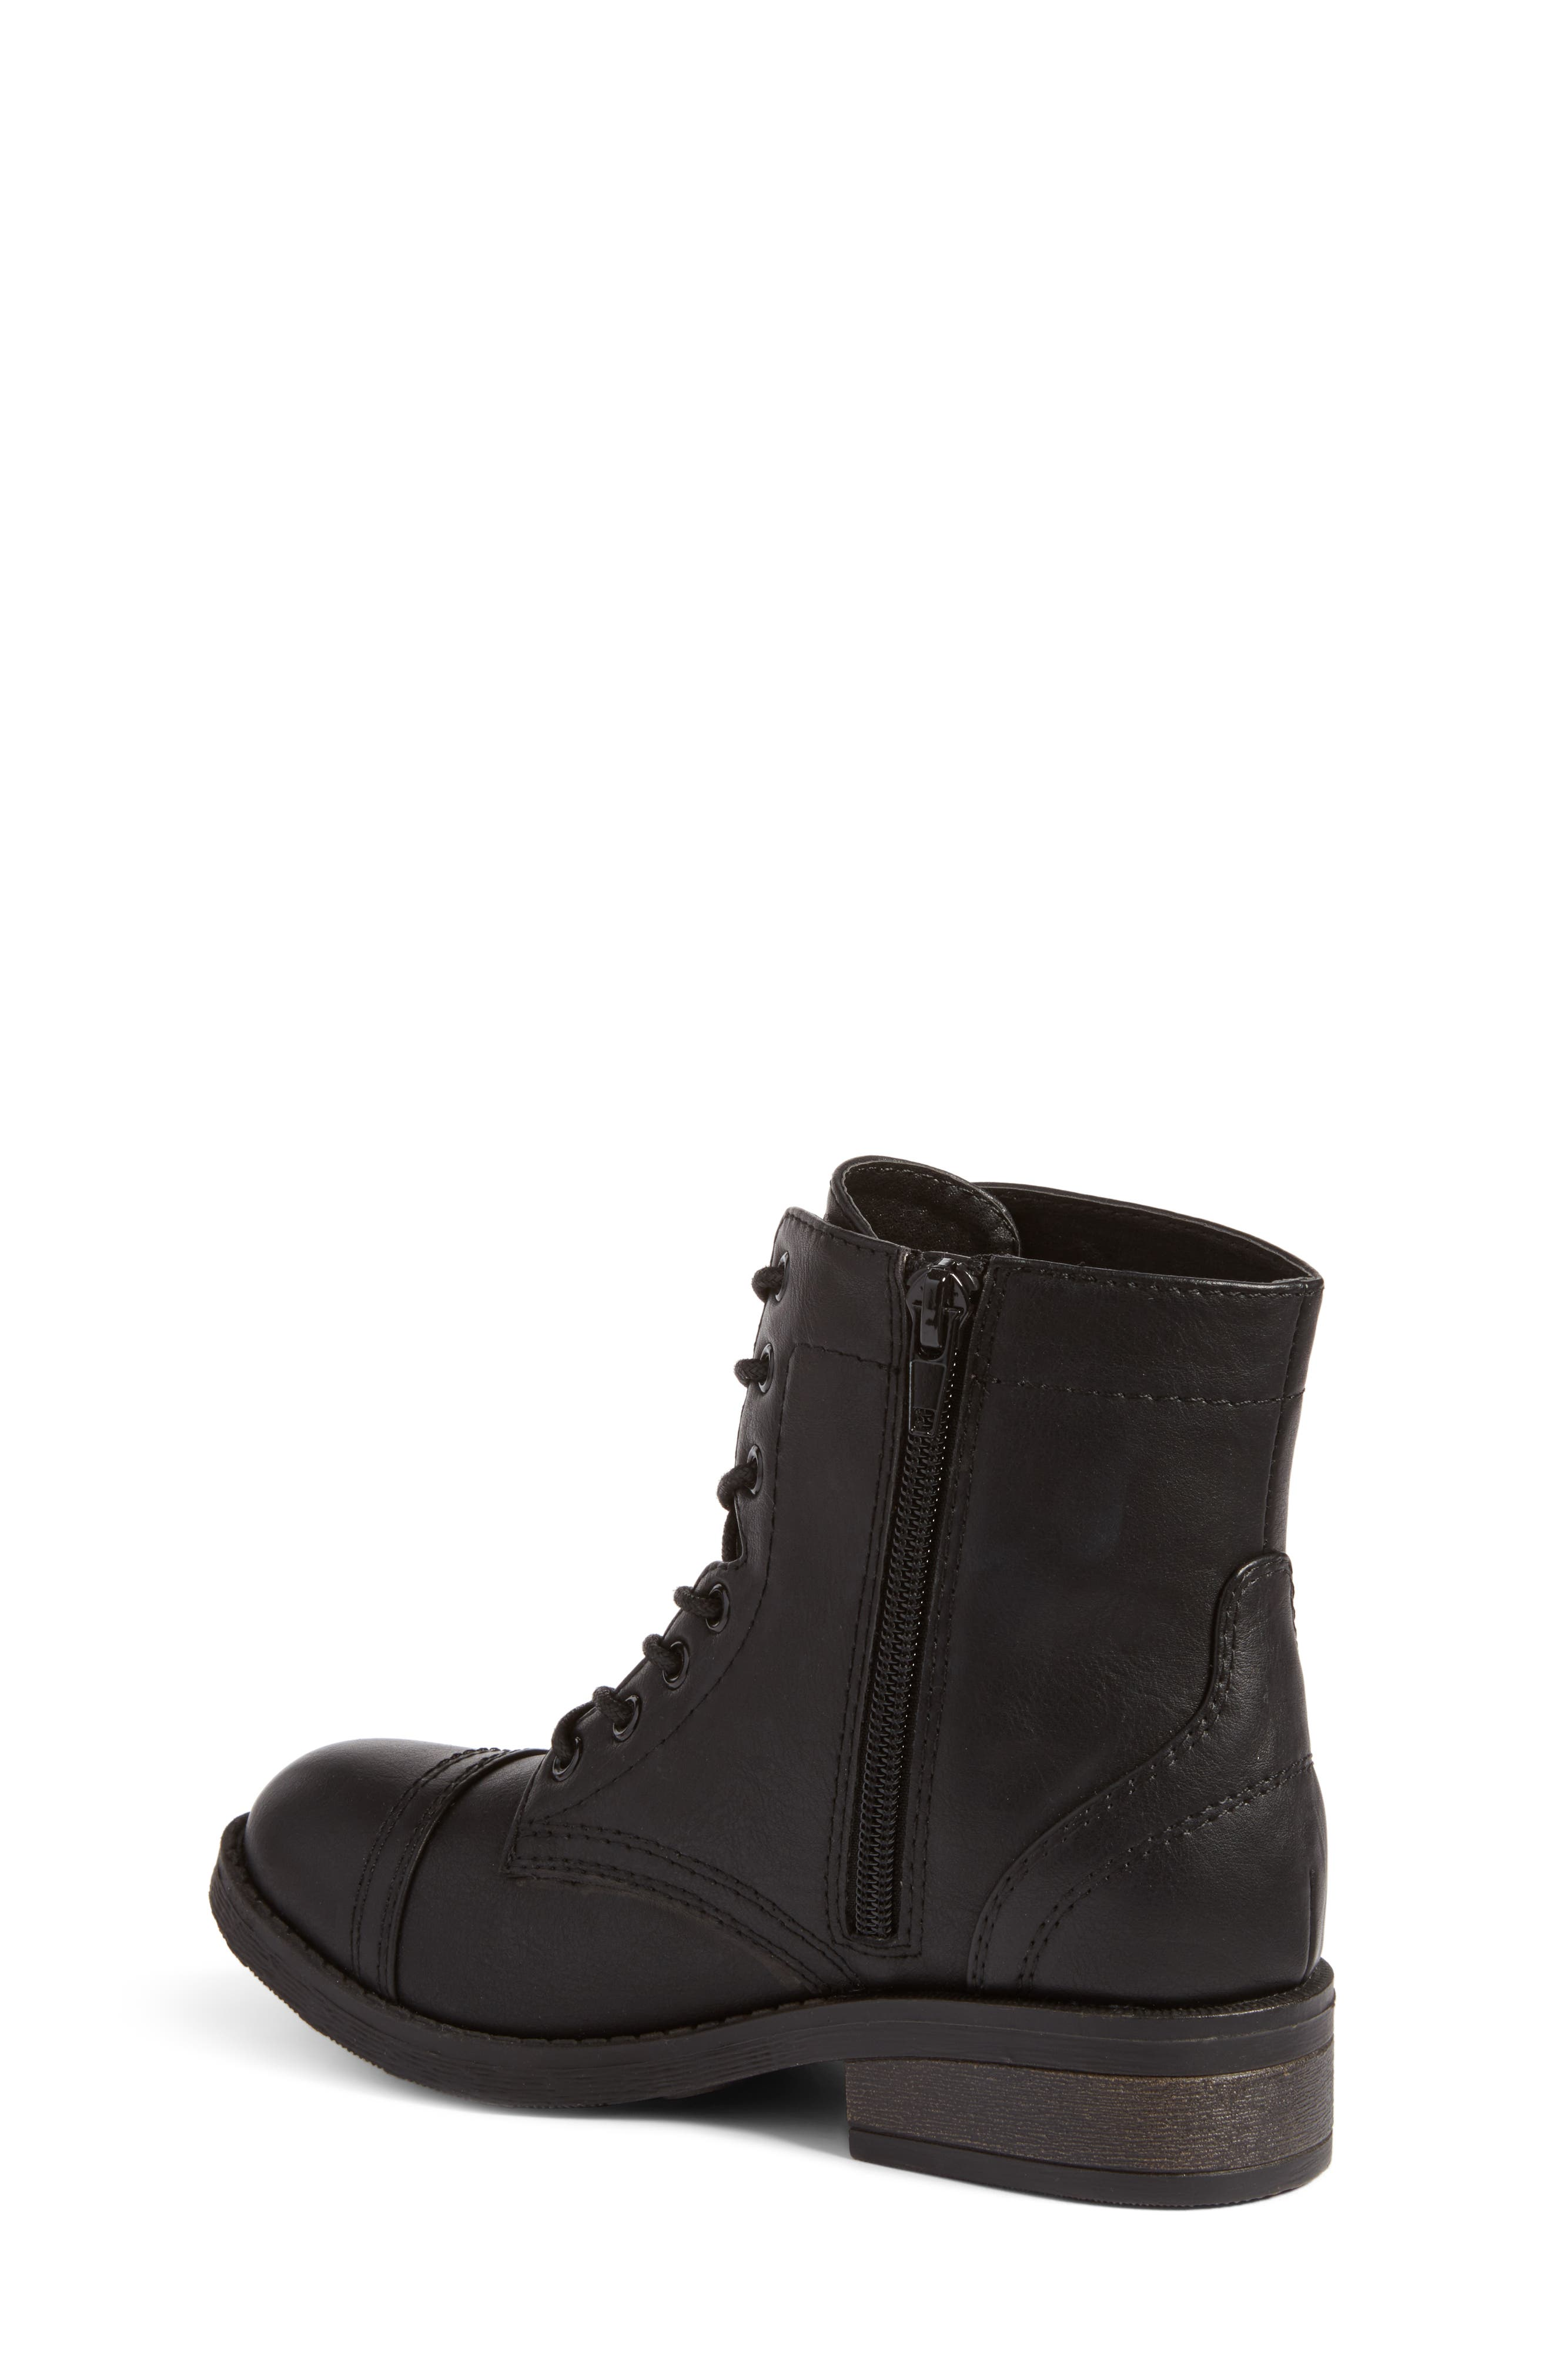 Roaring Embroidered Combat Boot,                             Alternate thumbnail 2, color,                             Black Faux Leather